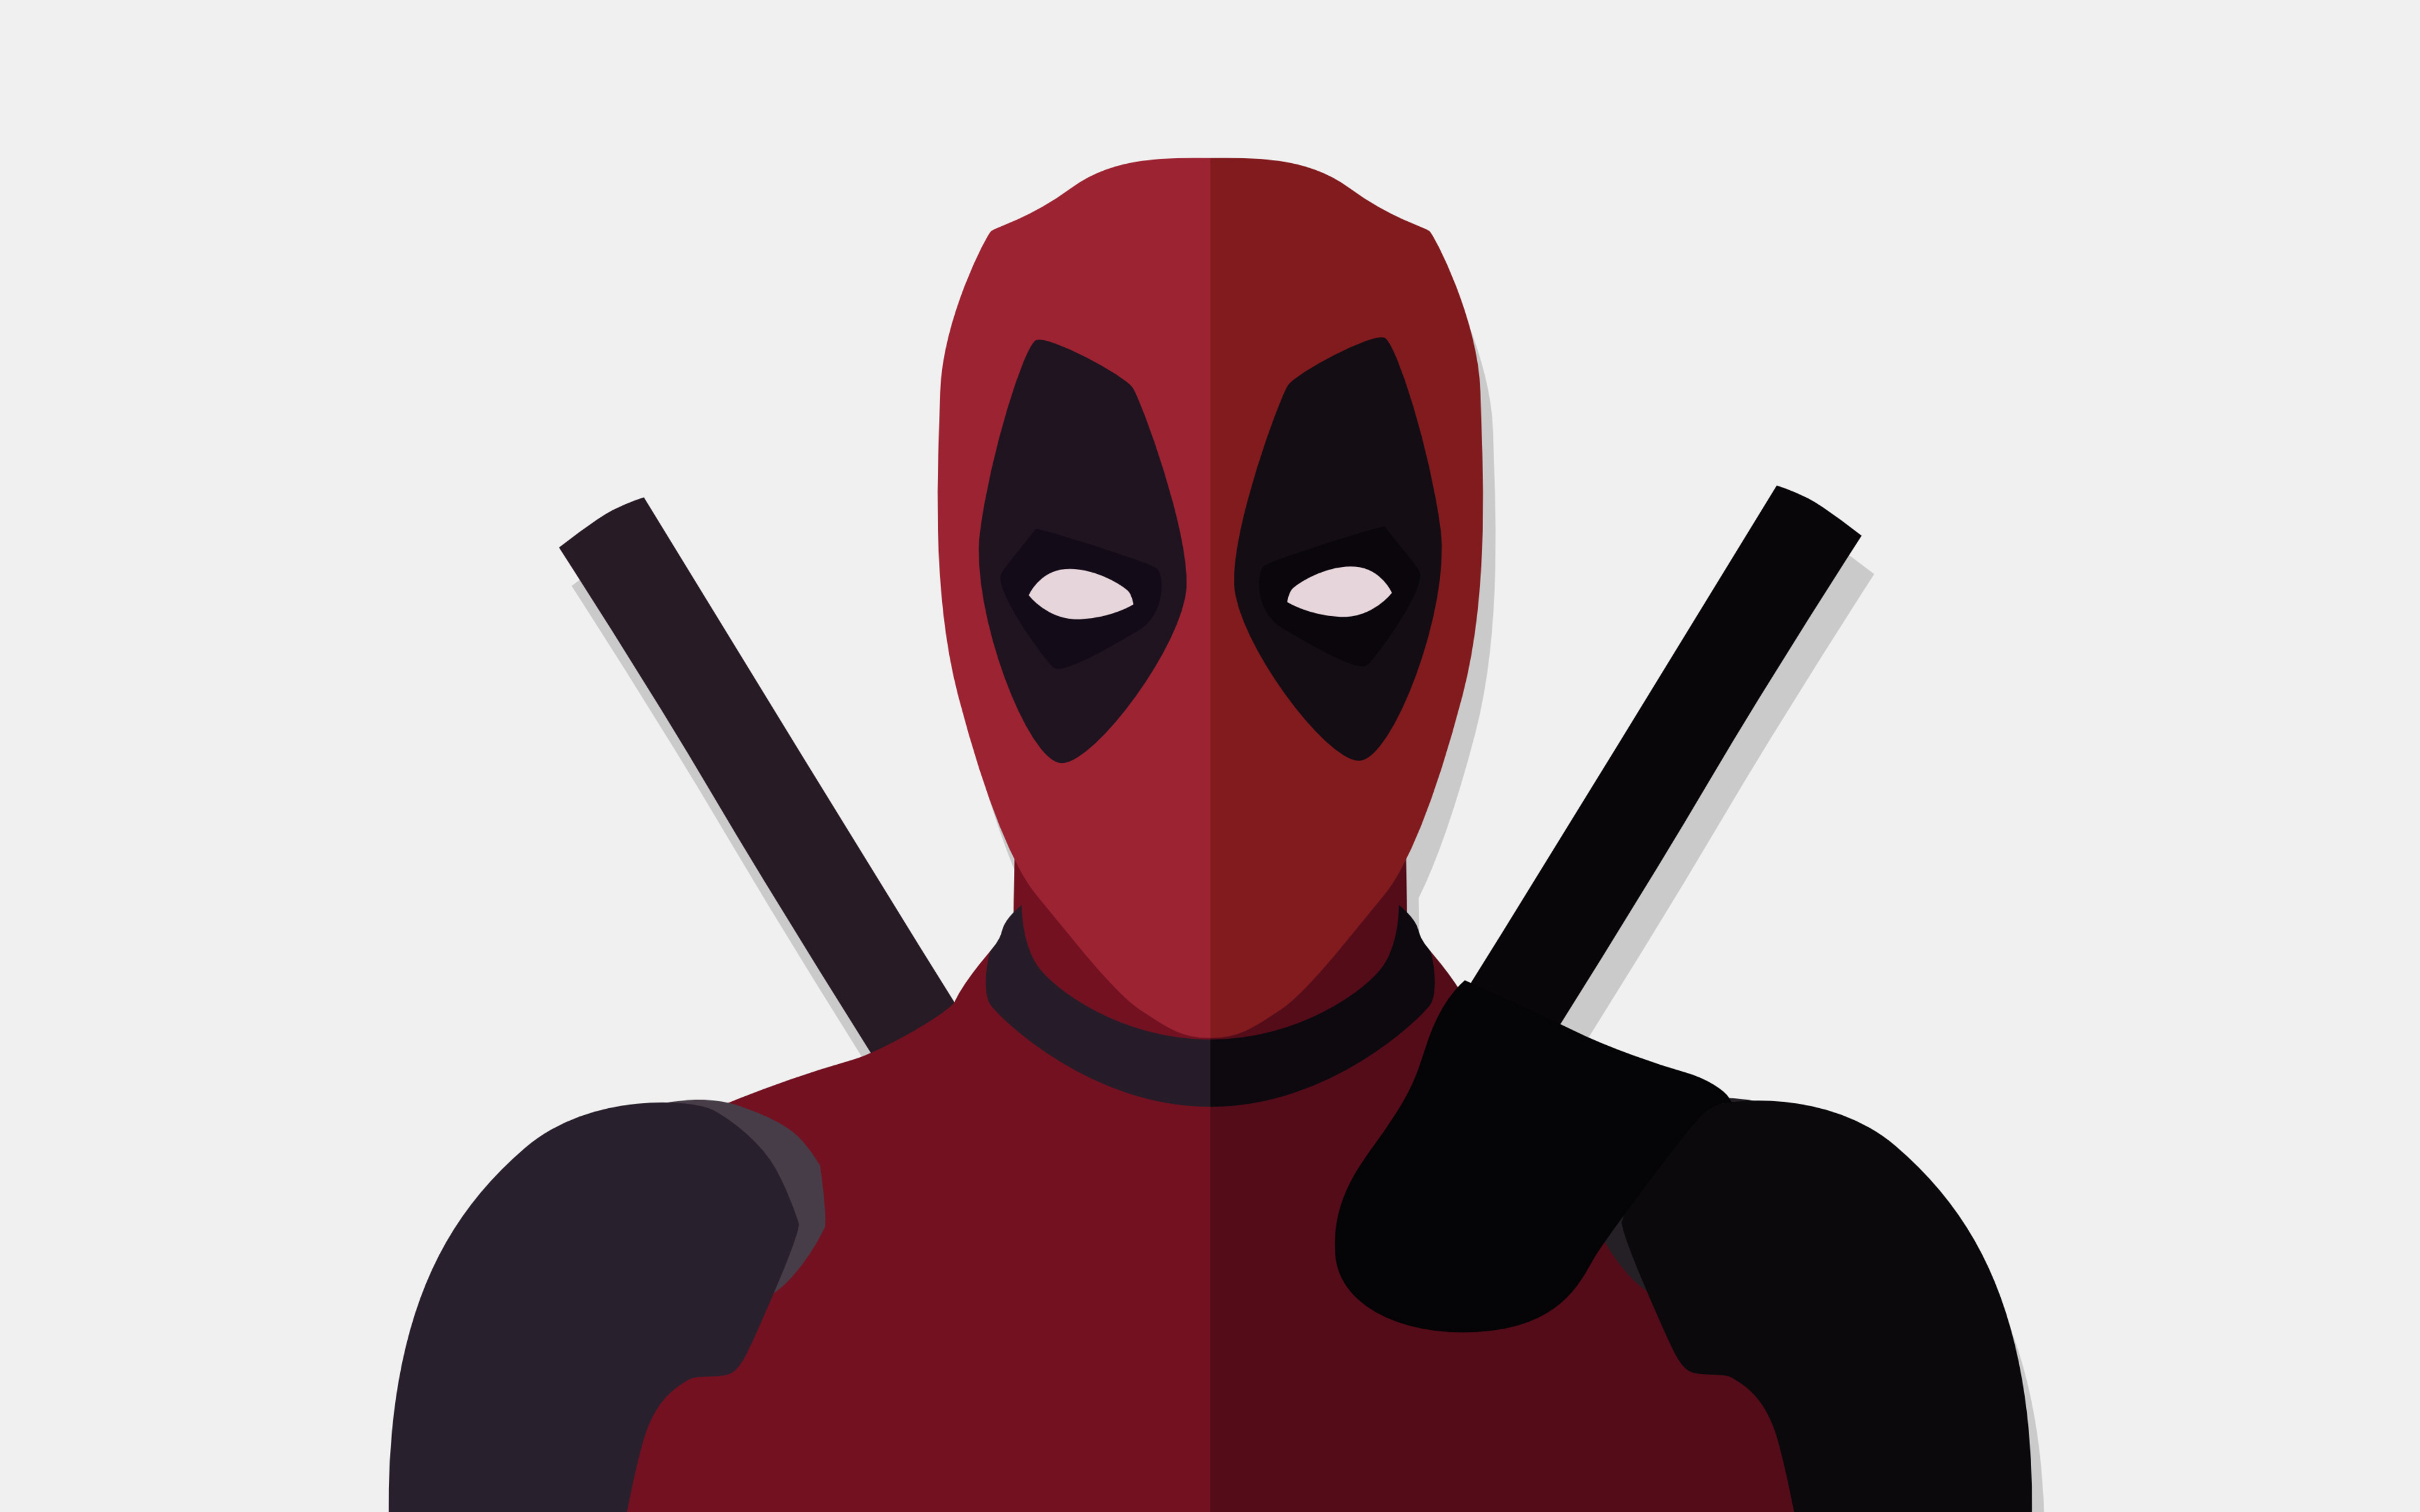 3840x2400 Deadpool Vector Minimalism 4k 4k Hd 4k Wallpapers Images Backgrounds Photos And Pictures